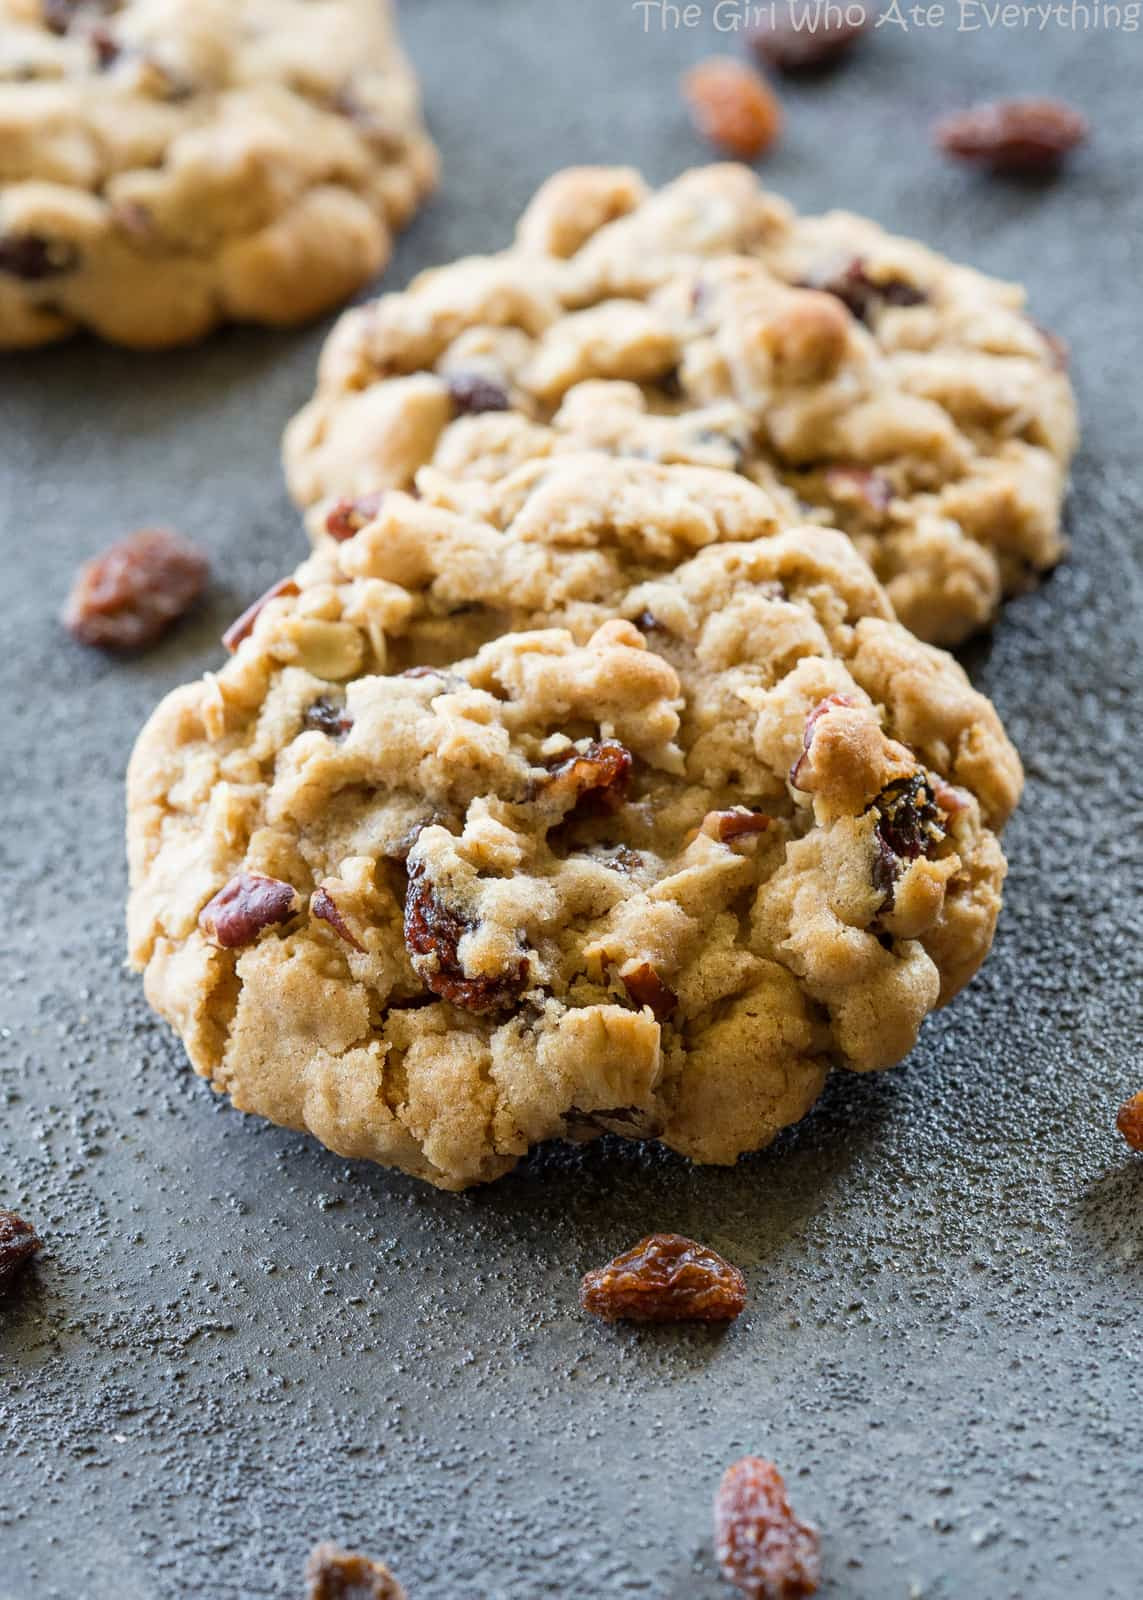 Chewy Oatmeal Cookies Recipe  Chewy Oatmeal Raisin Cookies The Girl Who Ate Everything